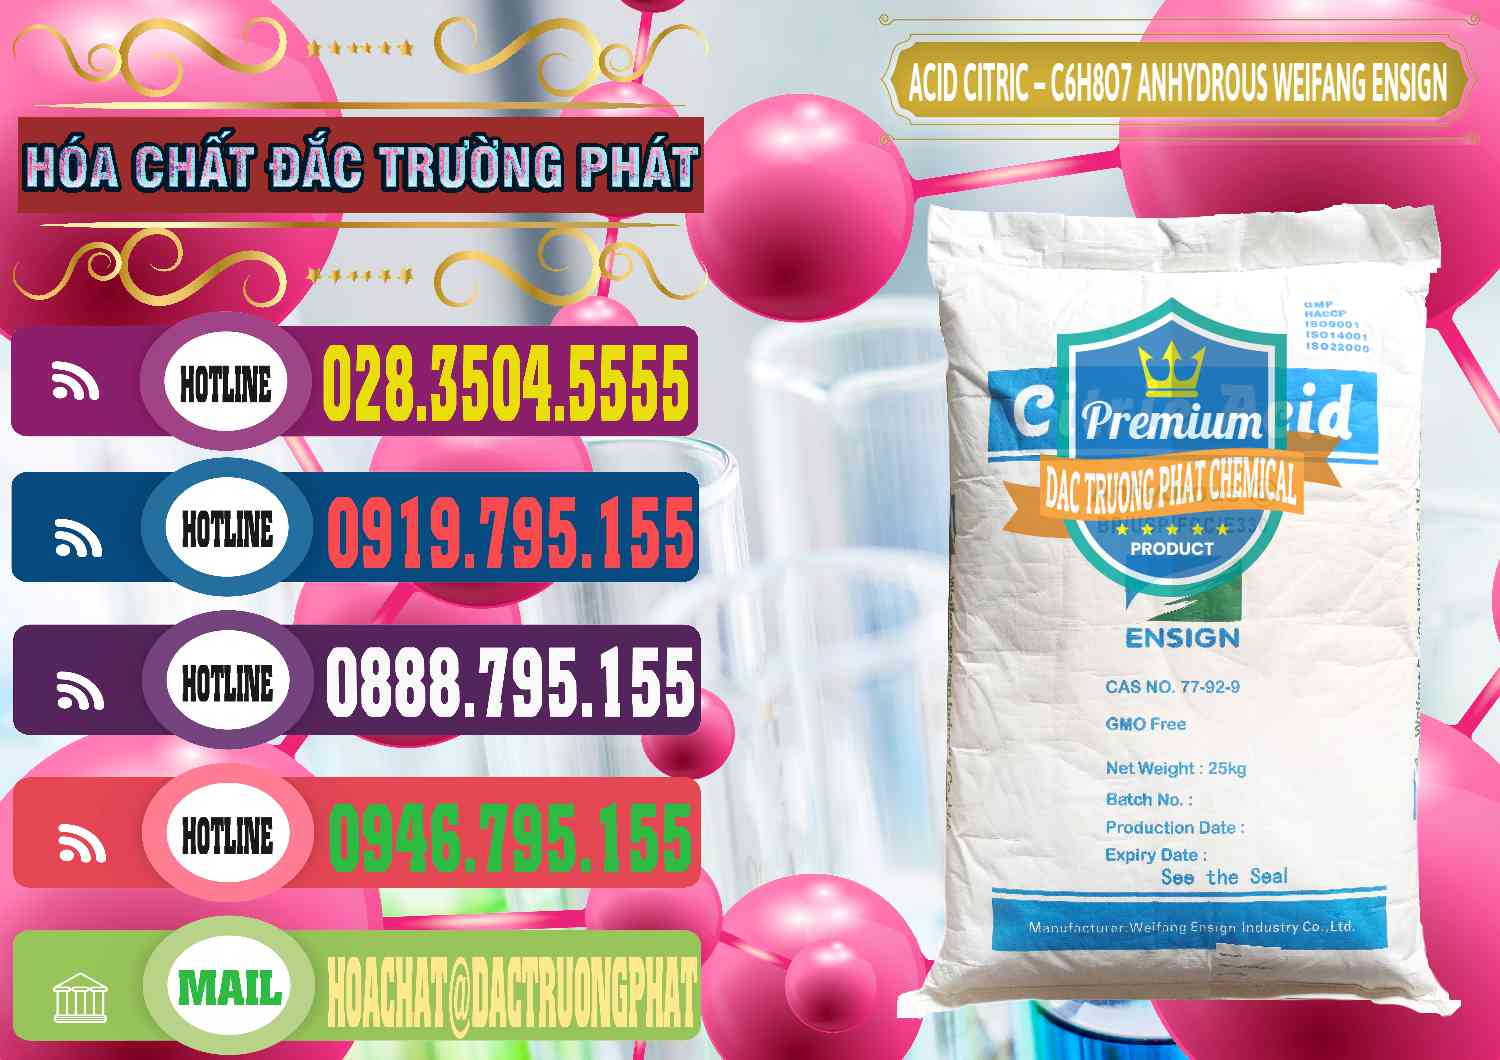 Acid Citric Khan Anhydrous - C6H8O7 Weifang Food Grade Trung Quốc China